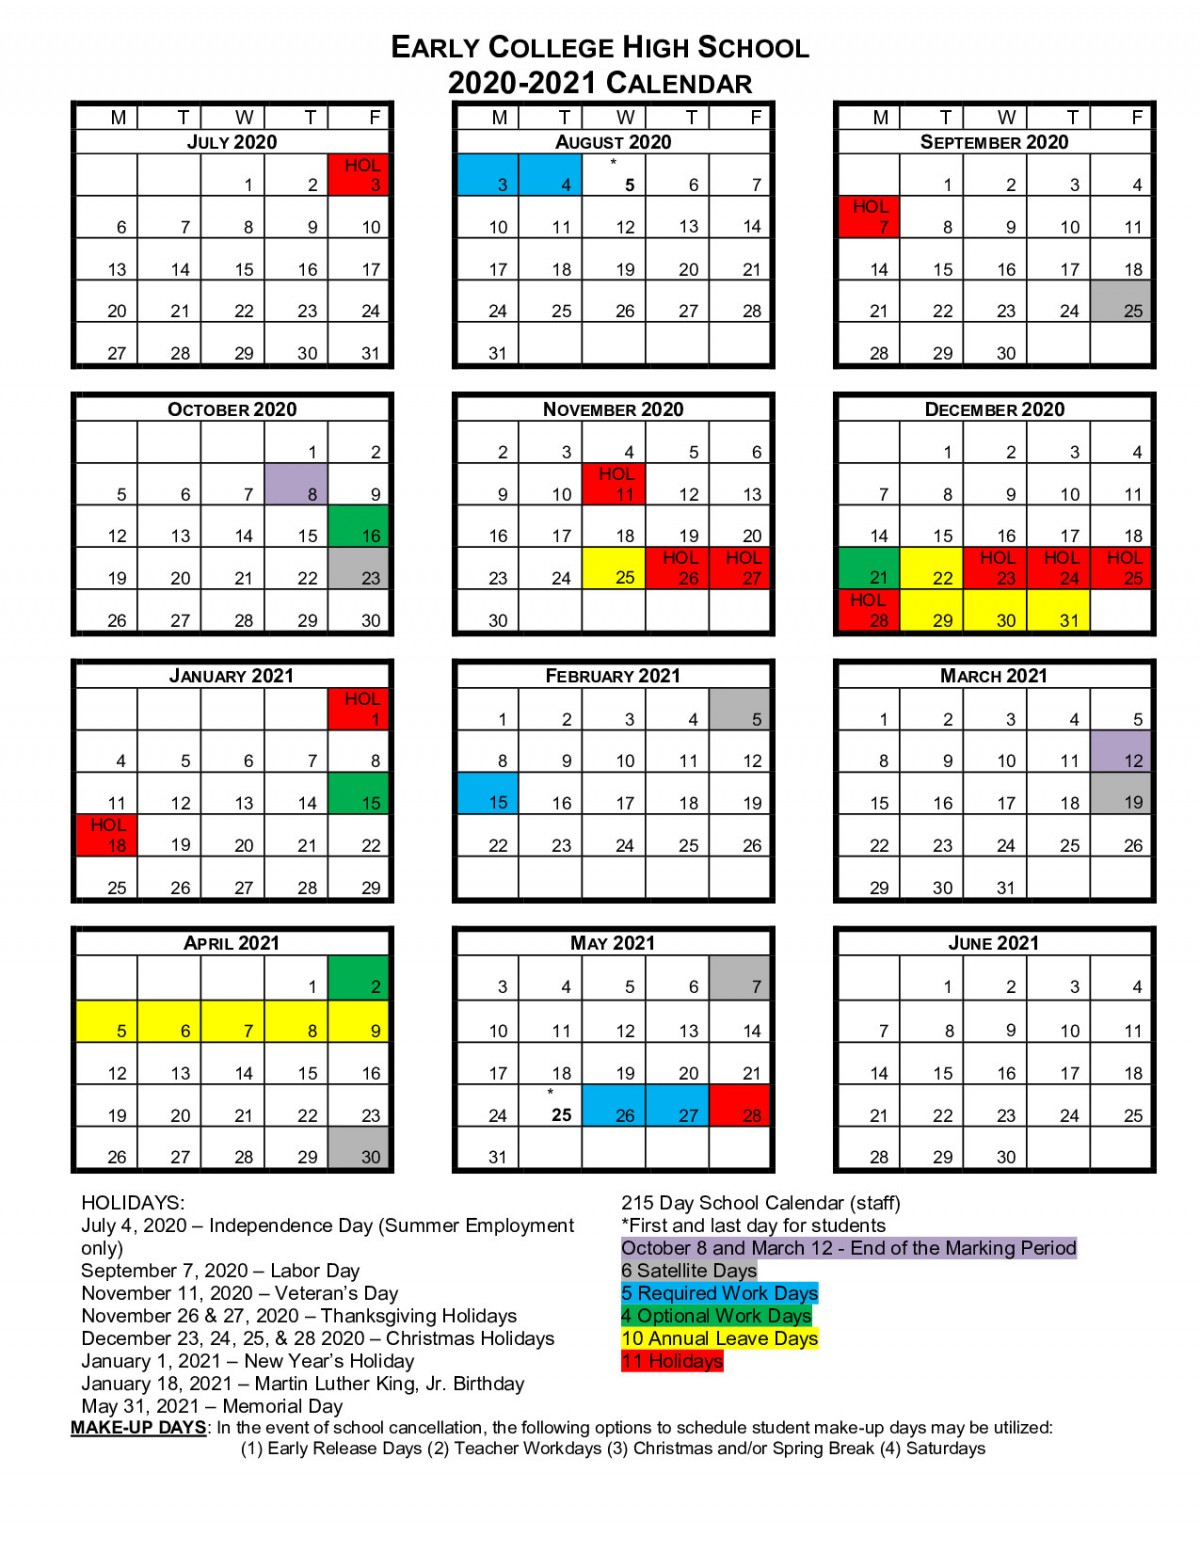 Bcs School Calendars | Beaufort County Schools with regard to East Allen County Schools Calendar